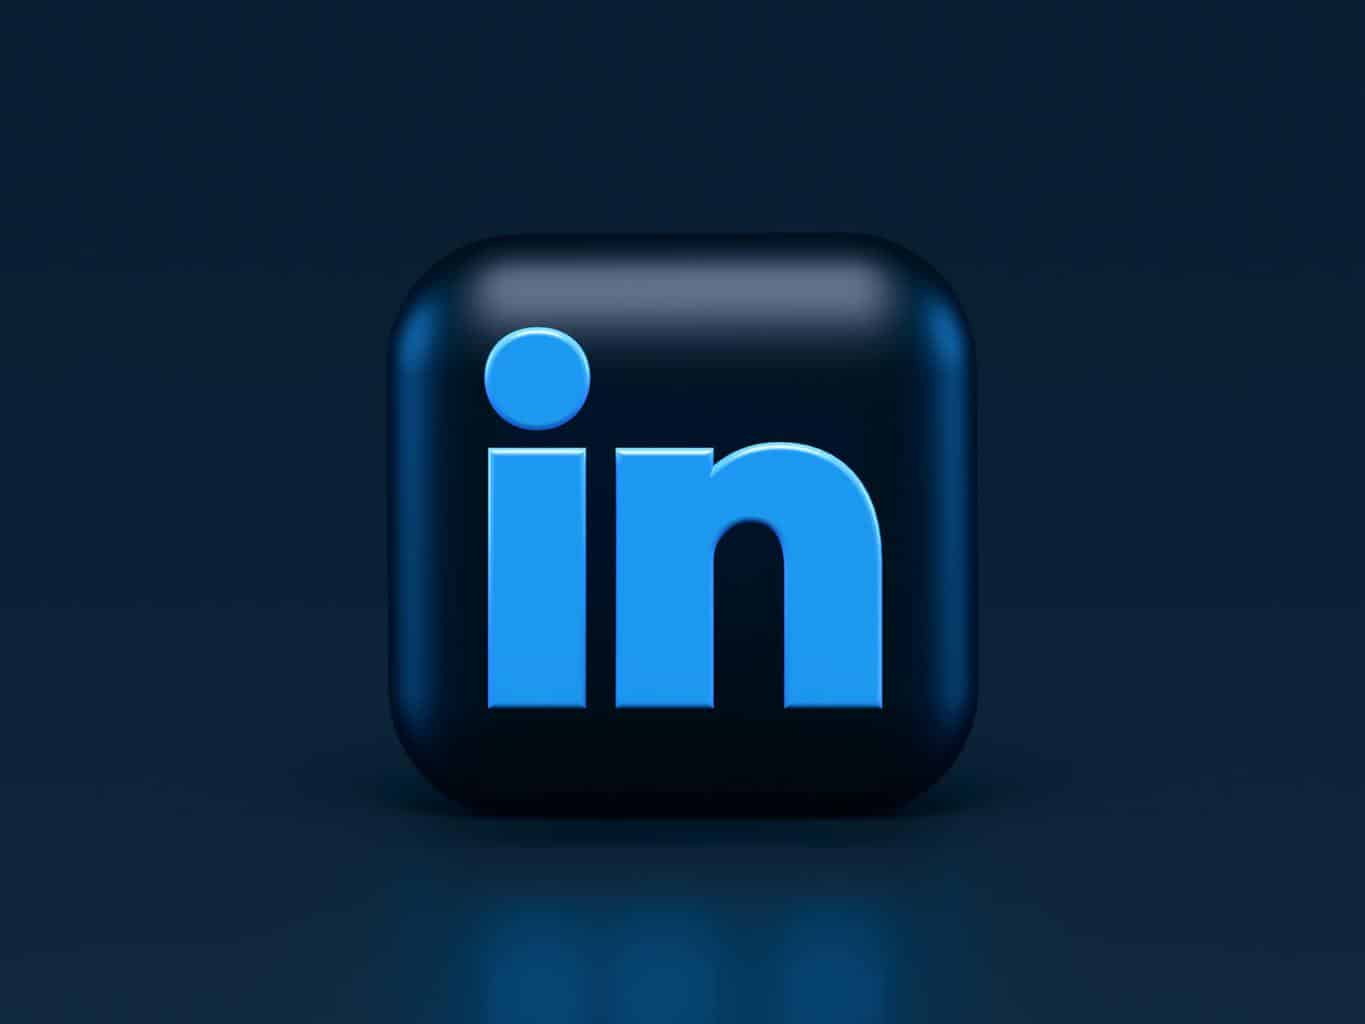 LinkedIn SSI: What is Your LinkedIn Social Selling Index Score and What Does It Mean?